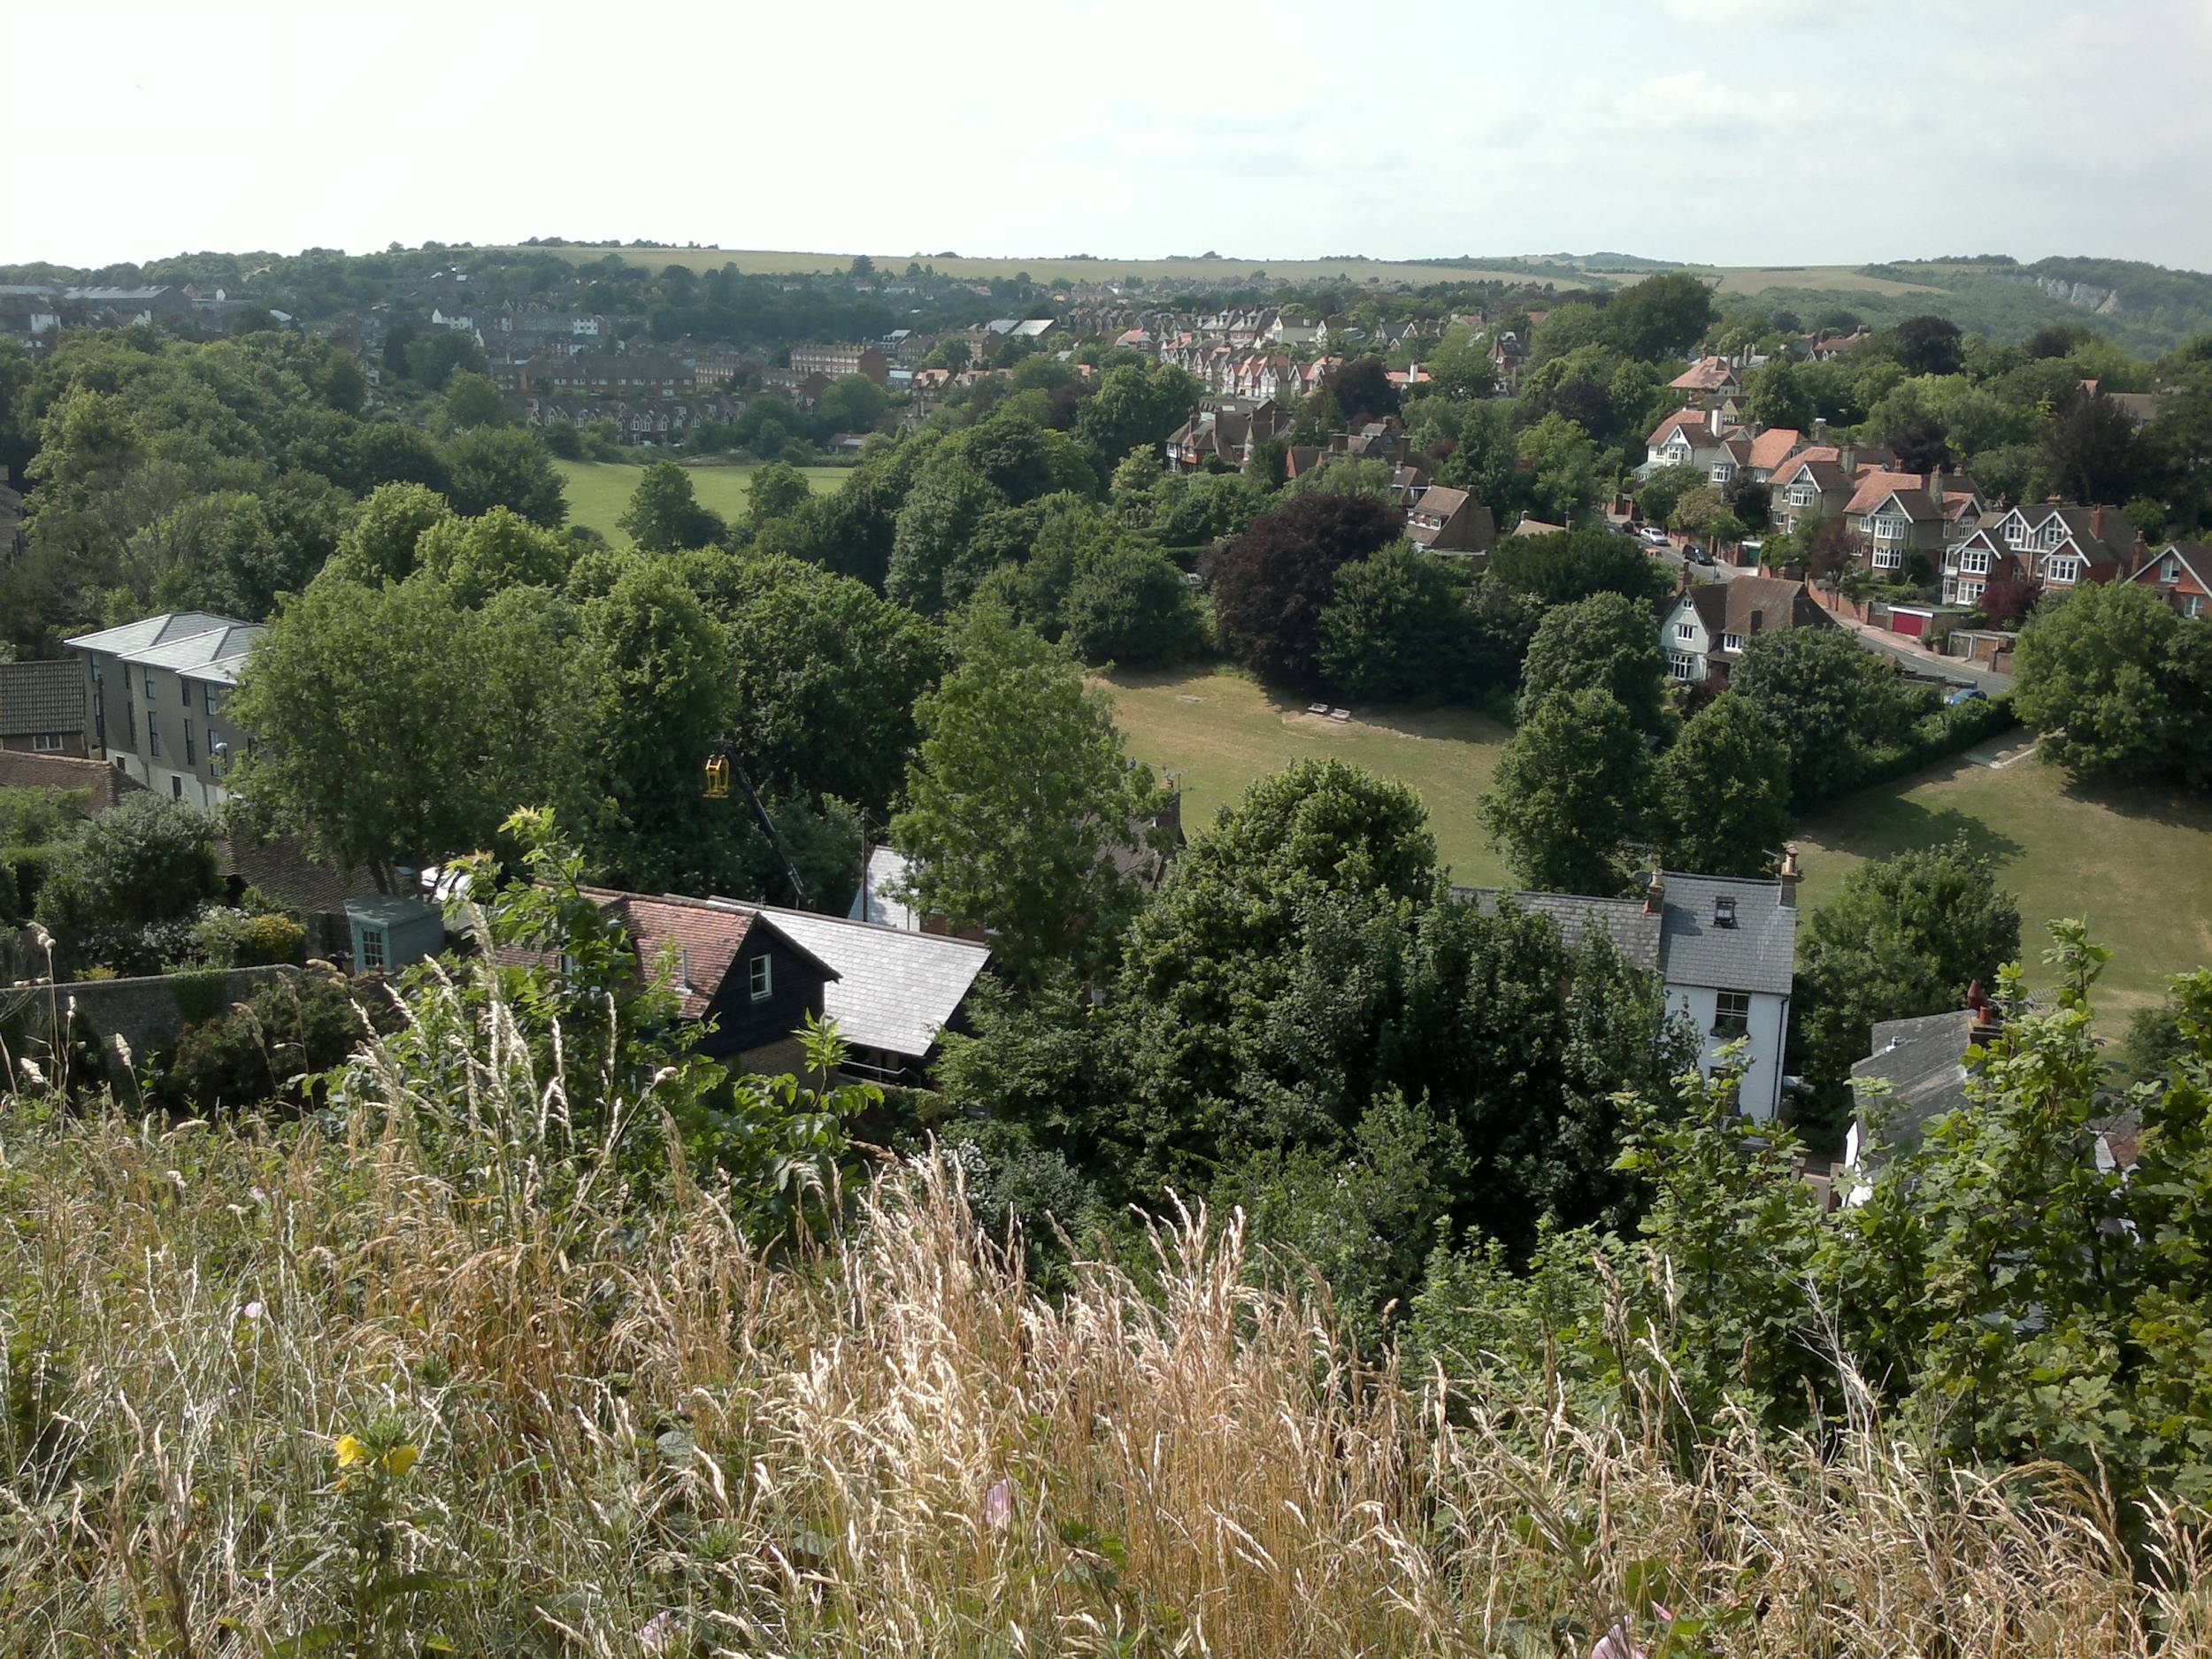 The Downs, where Montfort's troops appeared on the slope